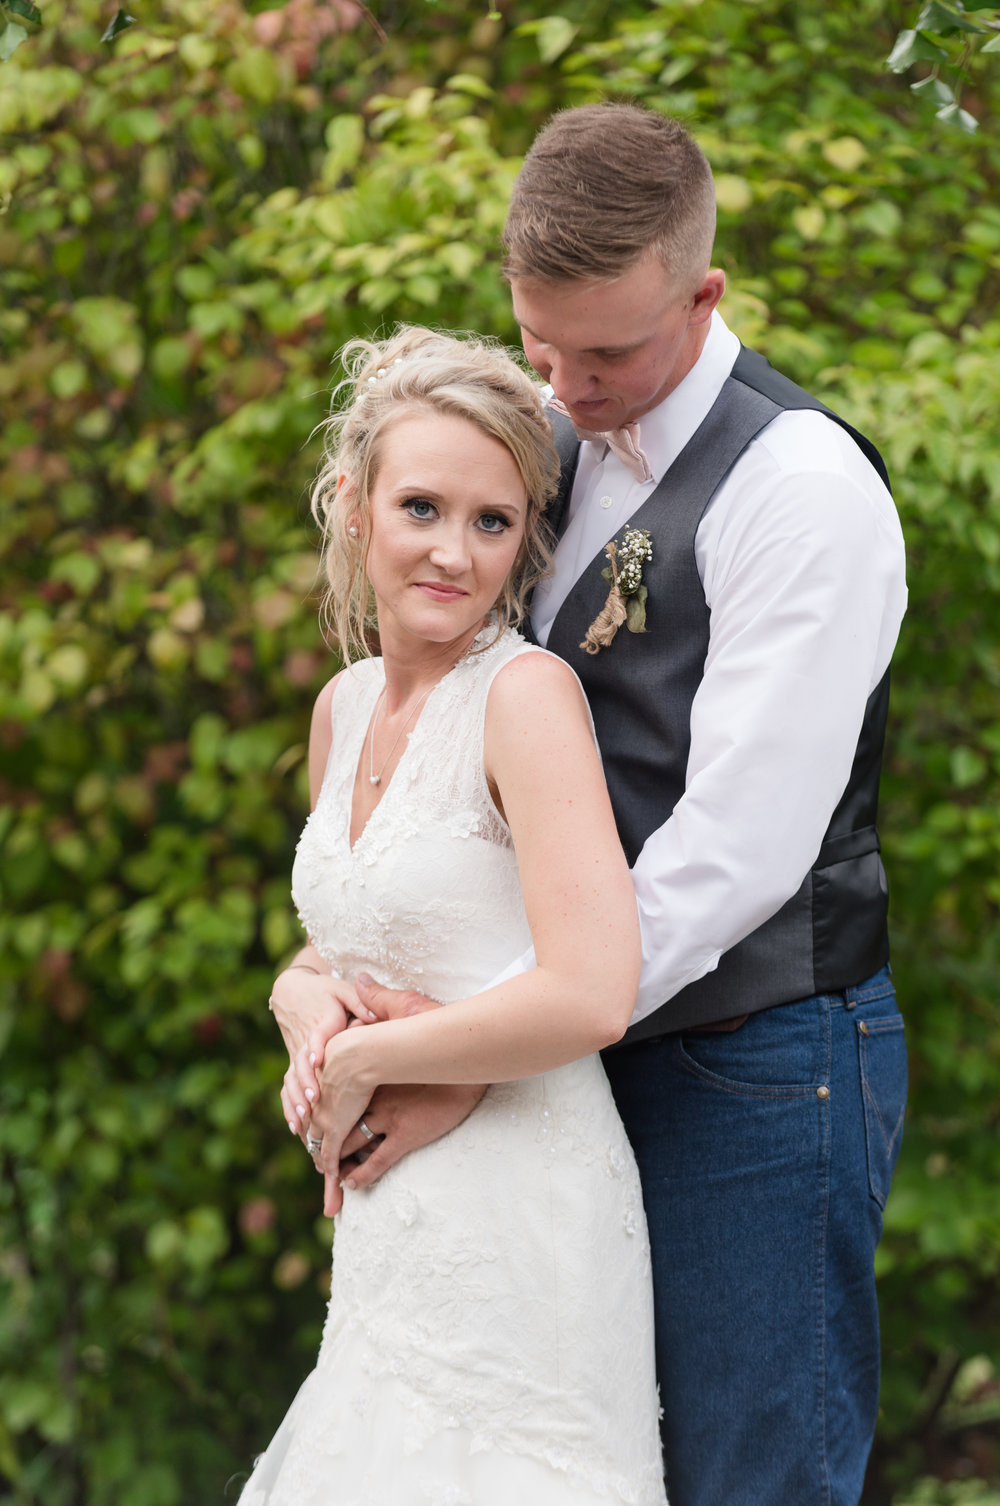 Wedding-photographer-asheville-33.jpg